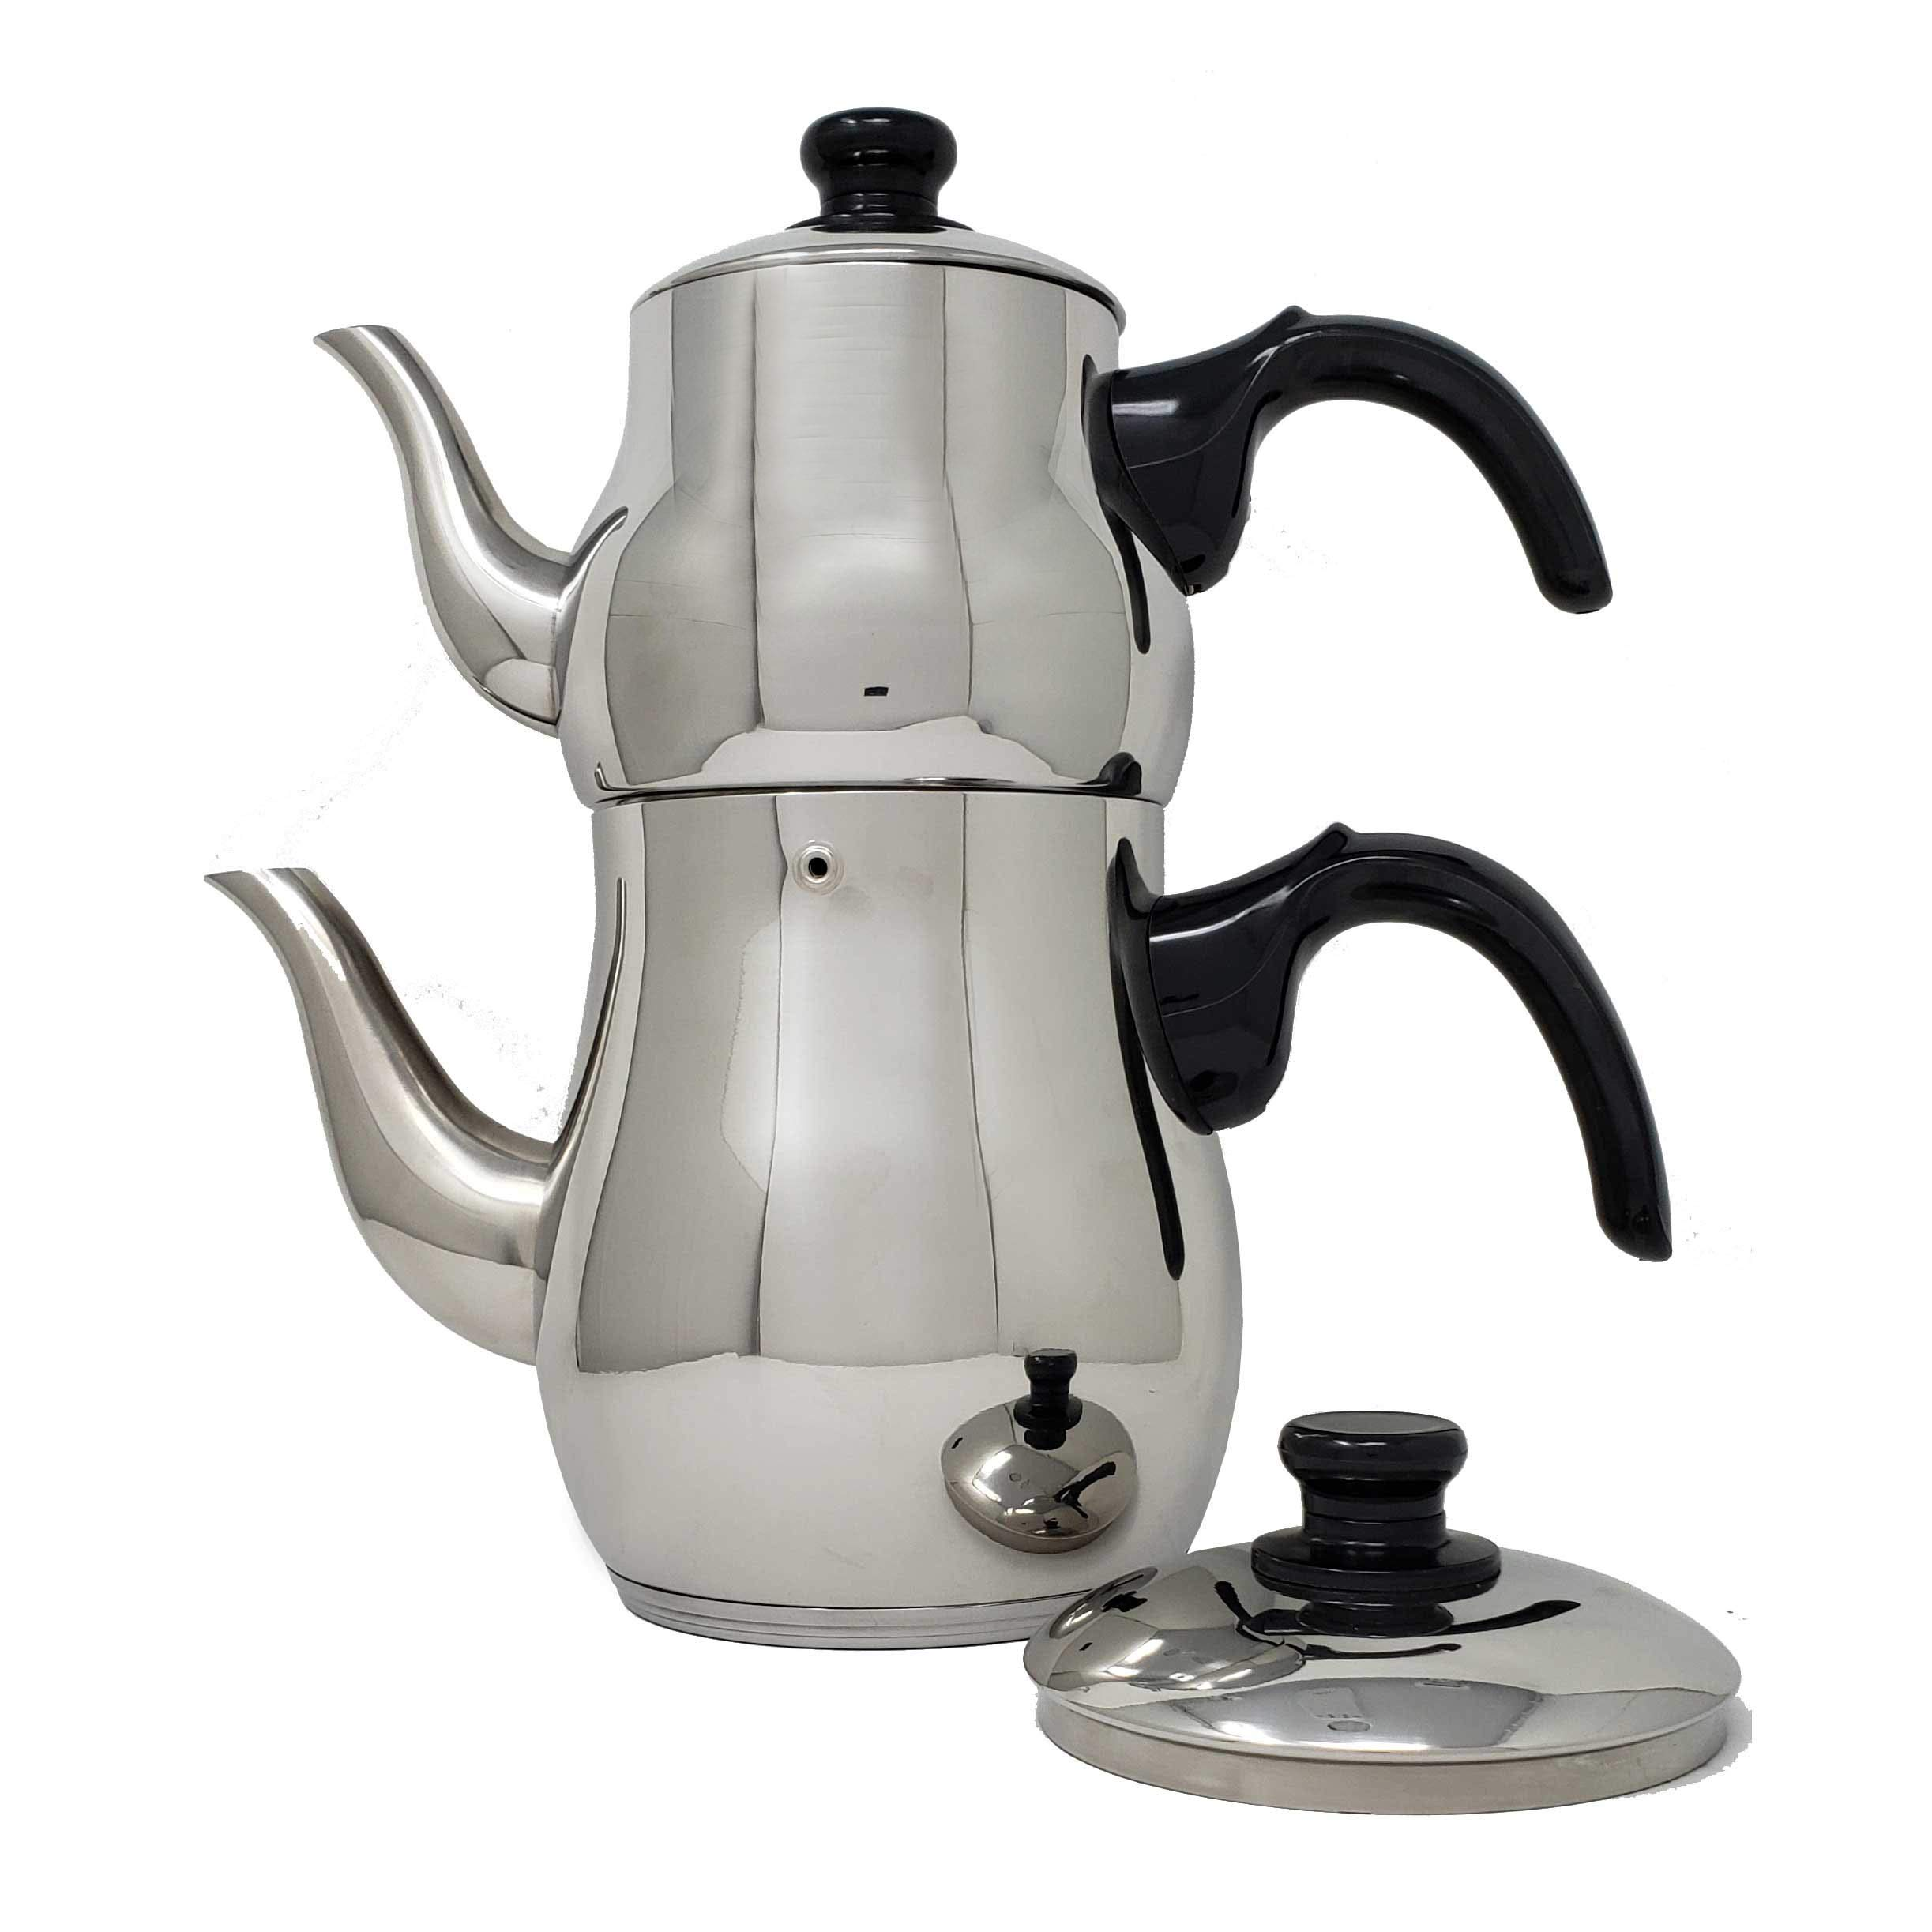 Turkish Samovar Style Stainless Steel Double Handle Teapot Tea Maker Kettle 1.1 L & 2.5 L Capacity